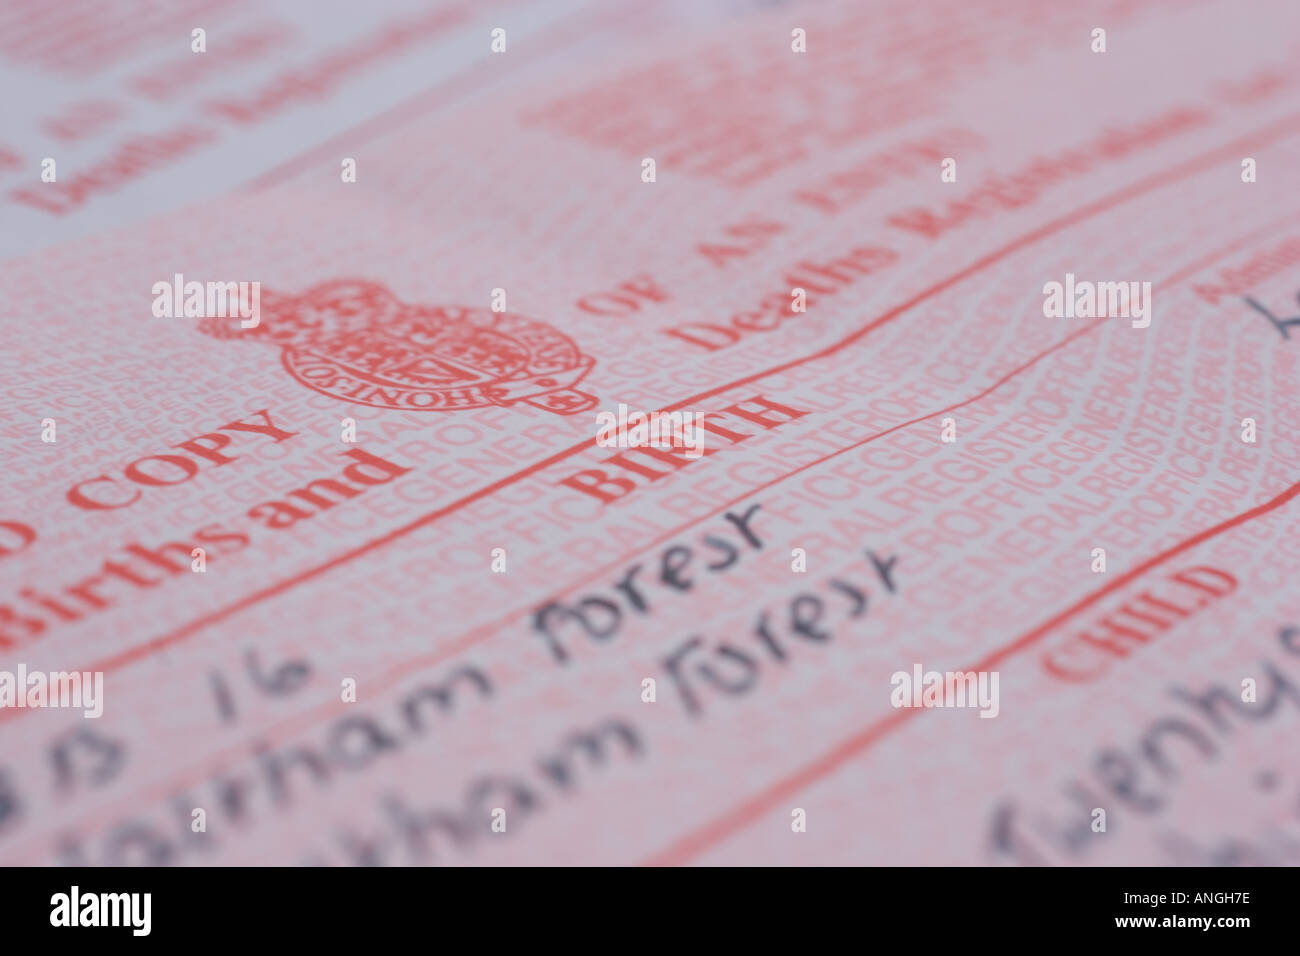 Uk birth certificate stock photo royalty free image 5067133 alamy uk birth certificate aiddatafo Gallery